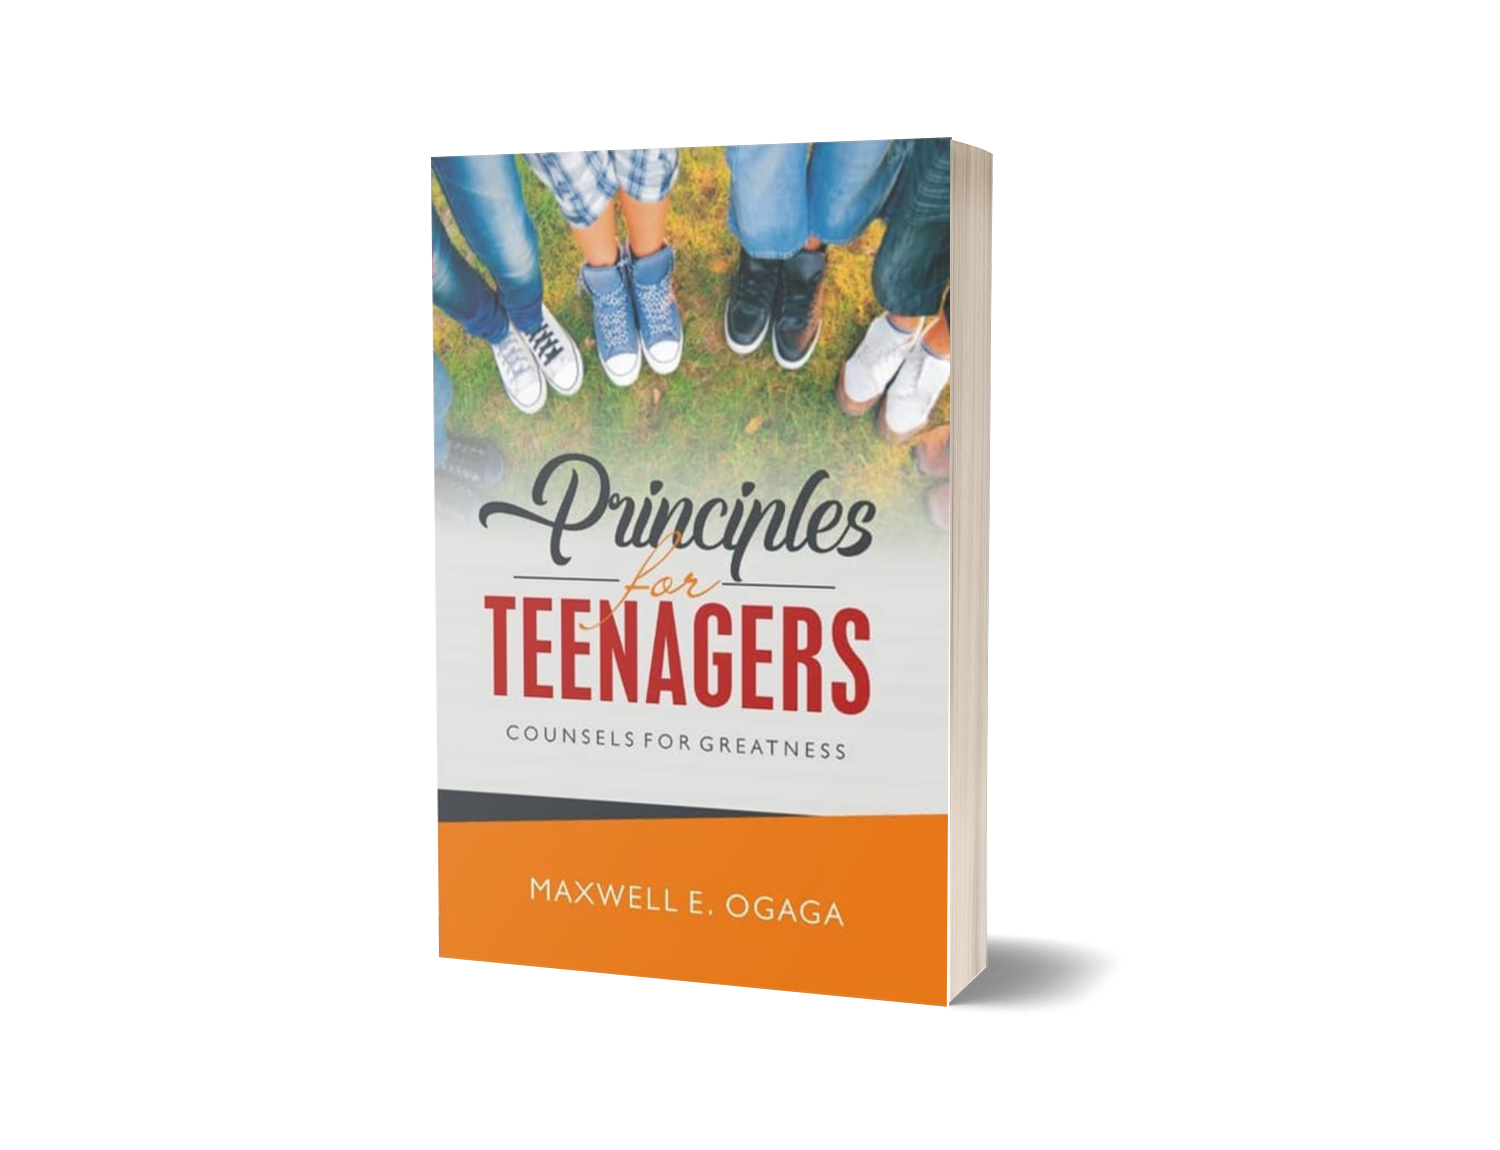 Principles for Teenagers